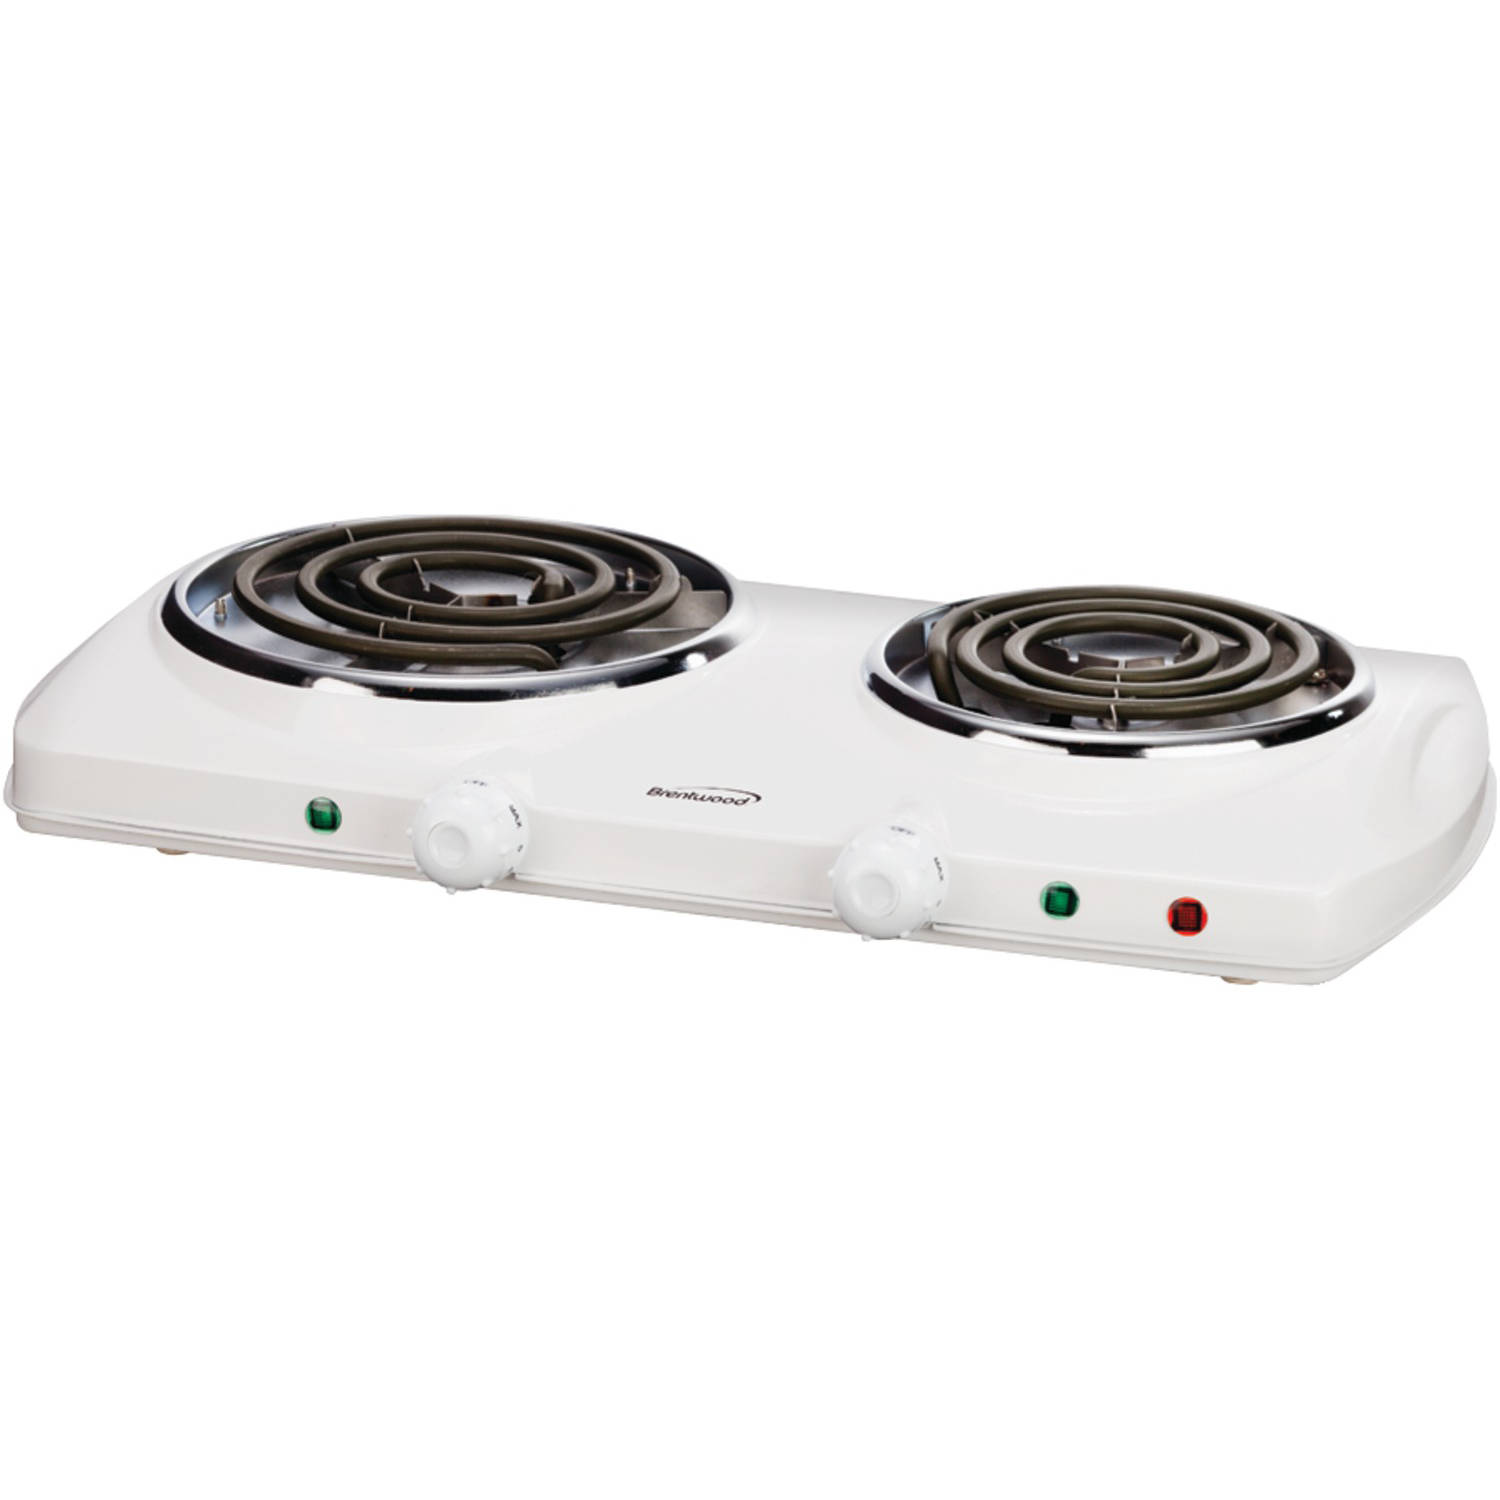 costway electric double burner hot plate portable stove heater